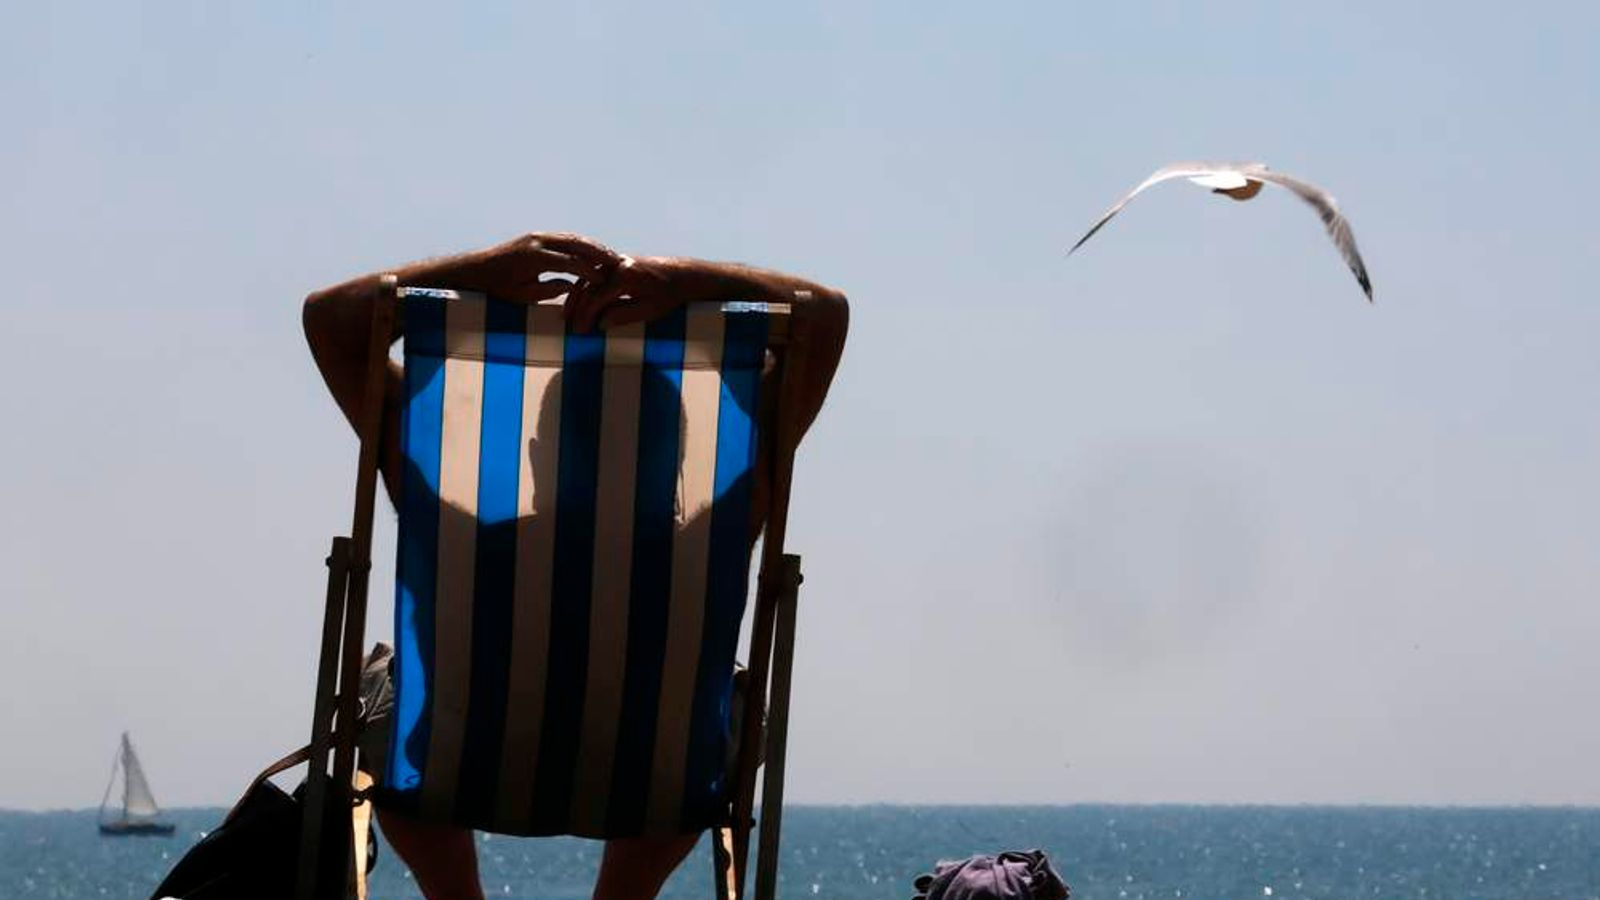 Sunbather on Brighton beach